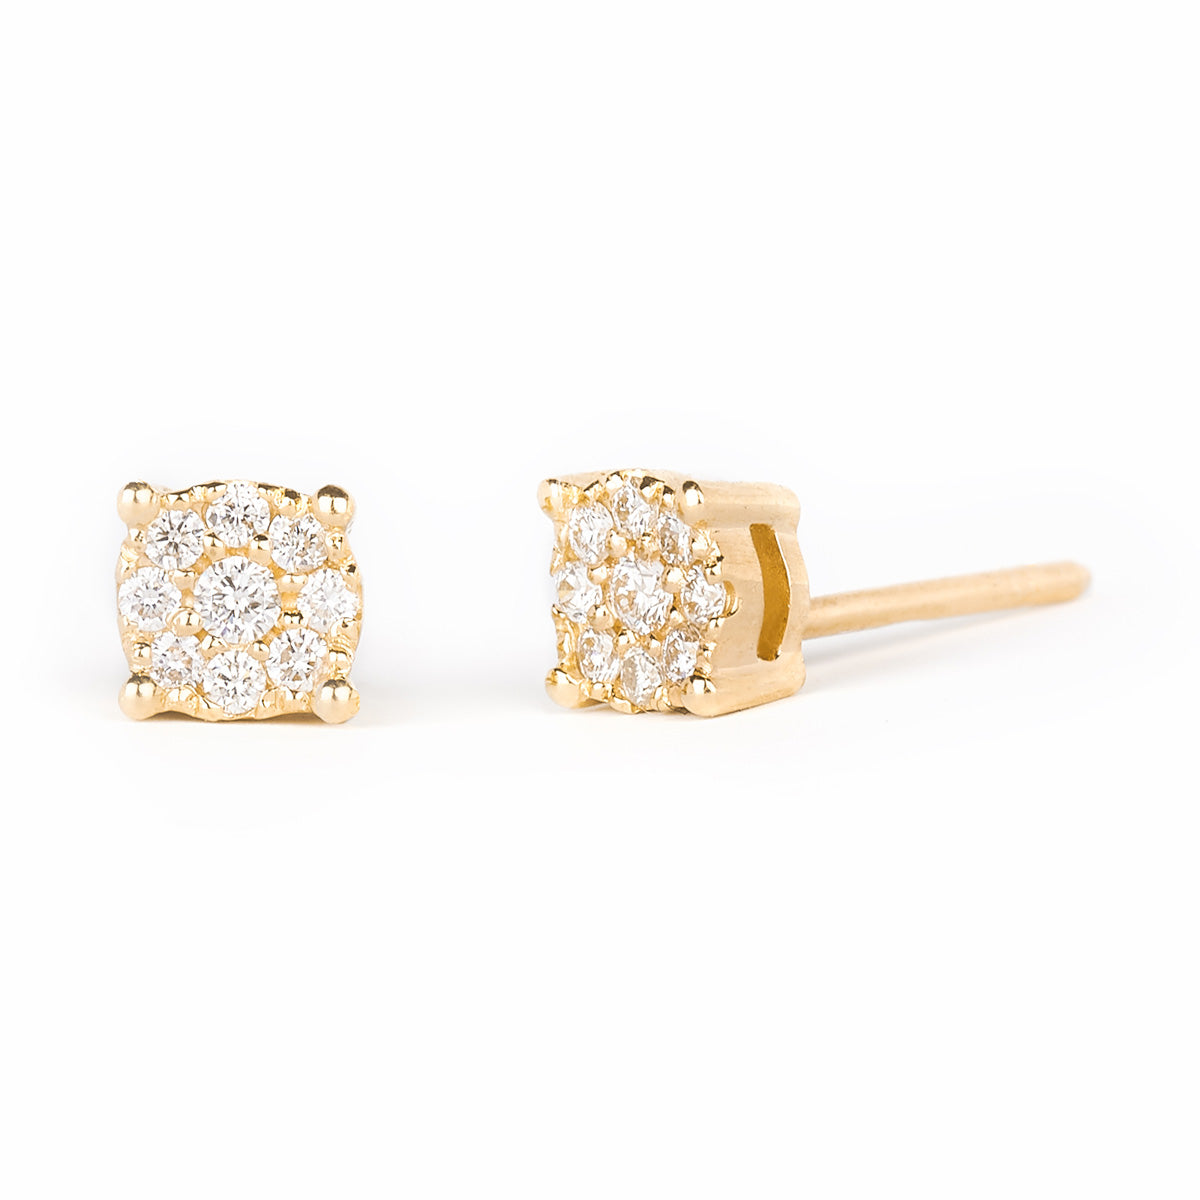 Jessica Jewellery yellow gold round diamond cluster stud earrings.